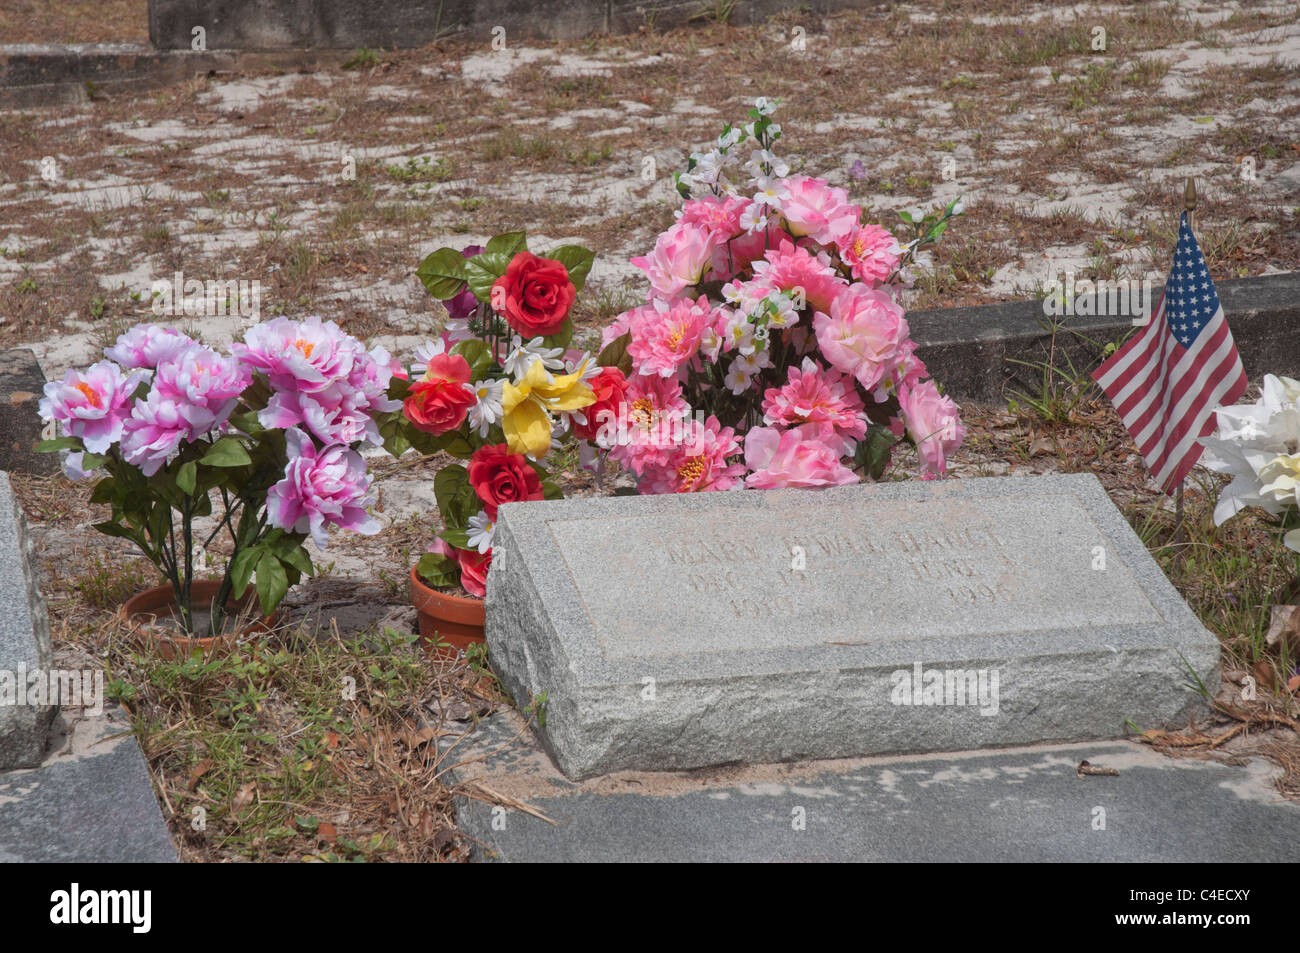 Artificial Flowers And American Flag Mark The Gravesites In Stock